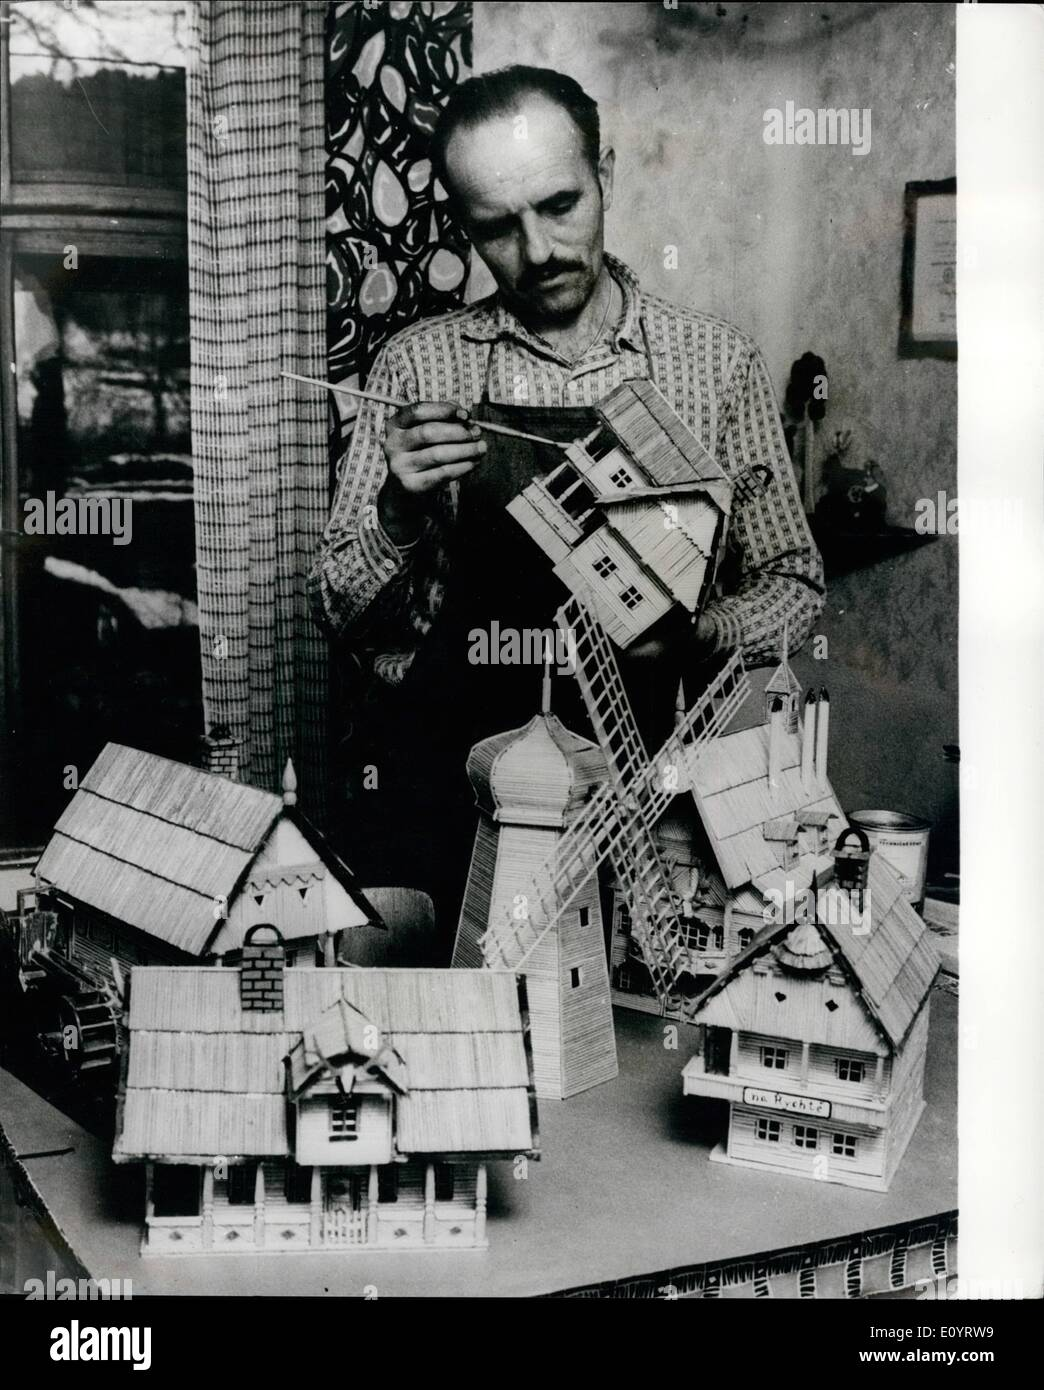 Apr. 24, 1971 - April 24th 1971 He makes models of typical Czech Folk architecture. Ancient times are revived in the hands of Vaclav Prochazka, from Dobriv near Rokycany, West Bohemia, who hobby is making models of ancient houses. He works as a fireman in an iron works and gives up all his spare time making exact models of inns, cottages windmills and other folk buildings from the 18th century. He makes them with thousands of skewers, paper and veneering wood - Stock Image